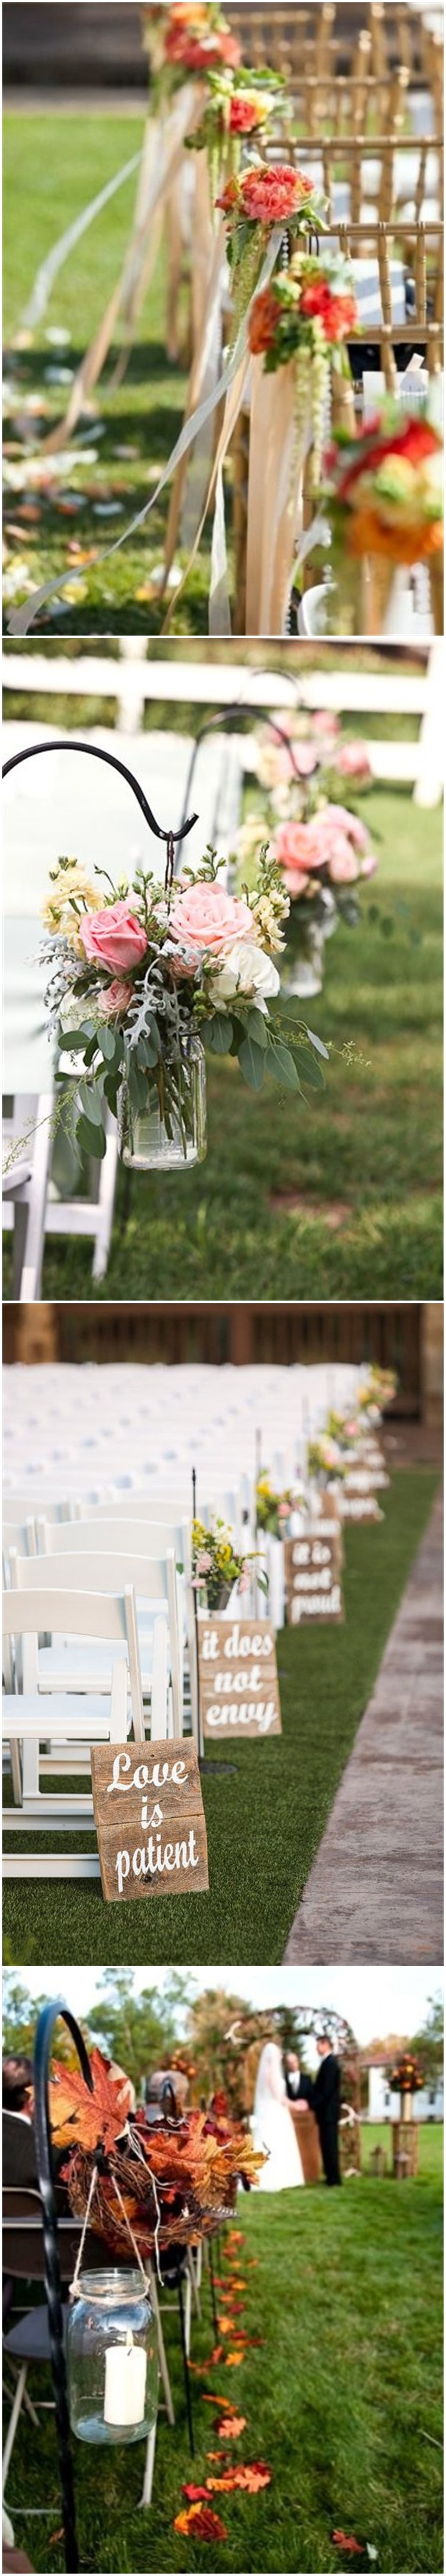 29 Awesome Wedding Aisle Decorations For Fall Wedding Pinterest